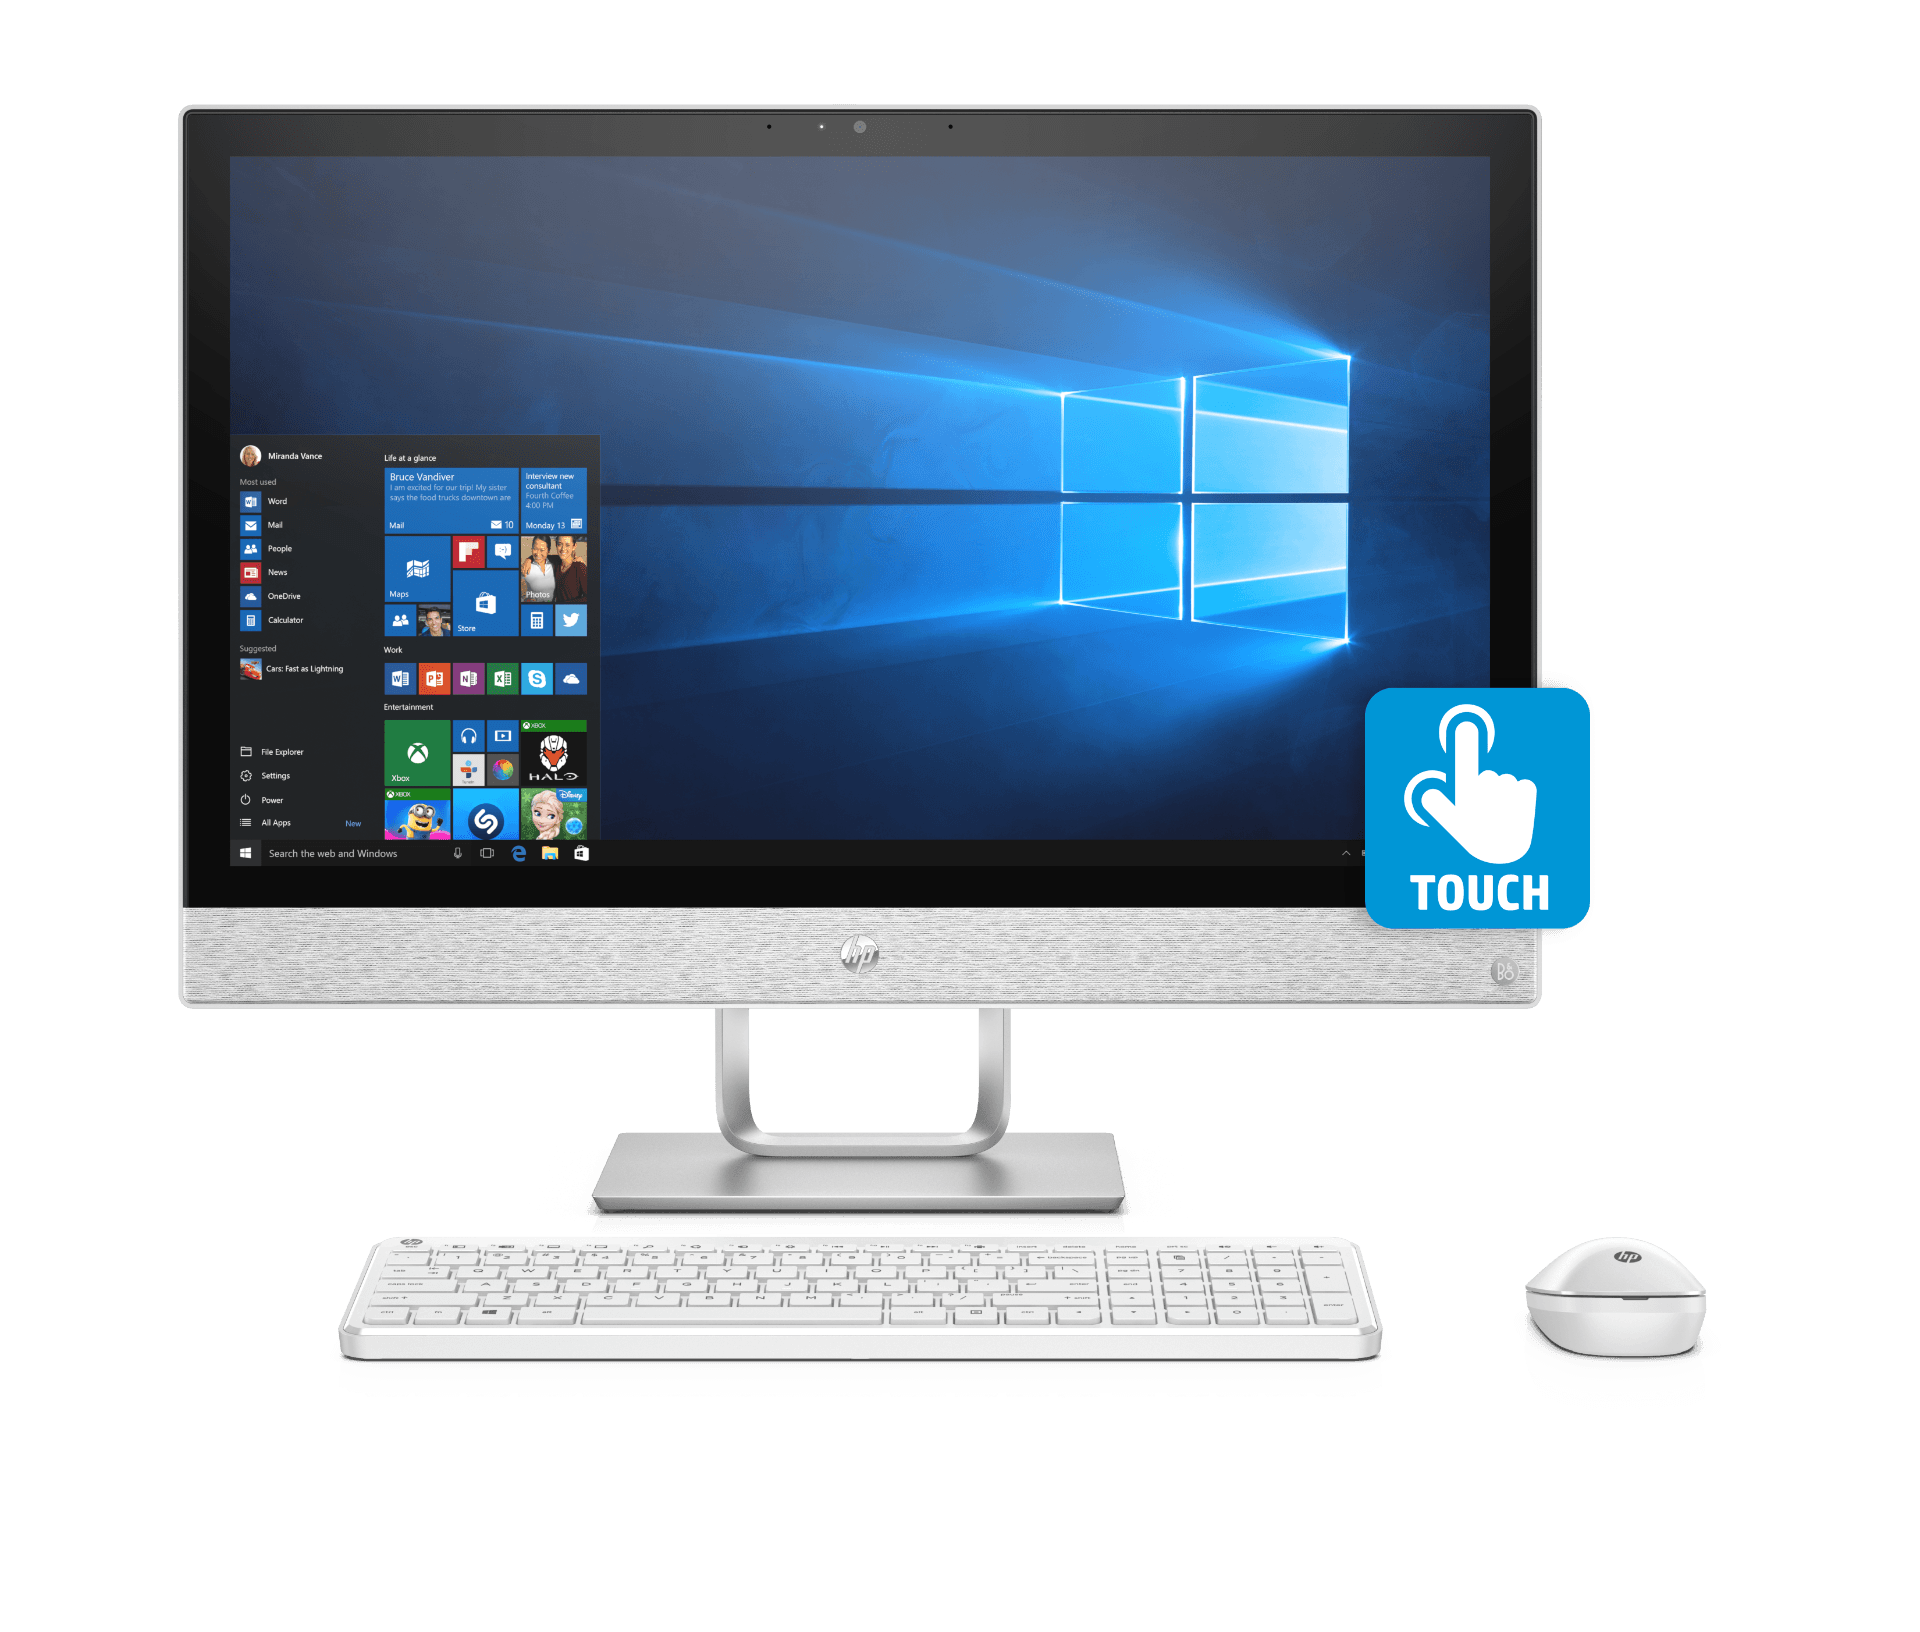 HP Pavilion All-in-One - 27-qa179in Touch i7 Hexa Core8TH 16 GB 2TB+128GB SSDWIN 10 WITH MS OFFICE Wireless 4 GB 3 YEAR Warranty